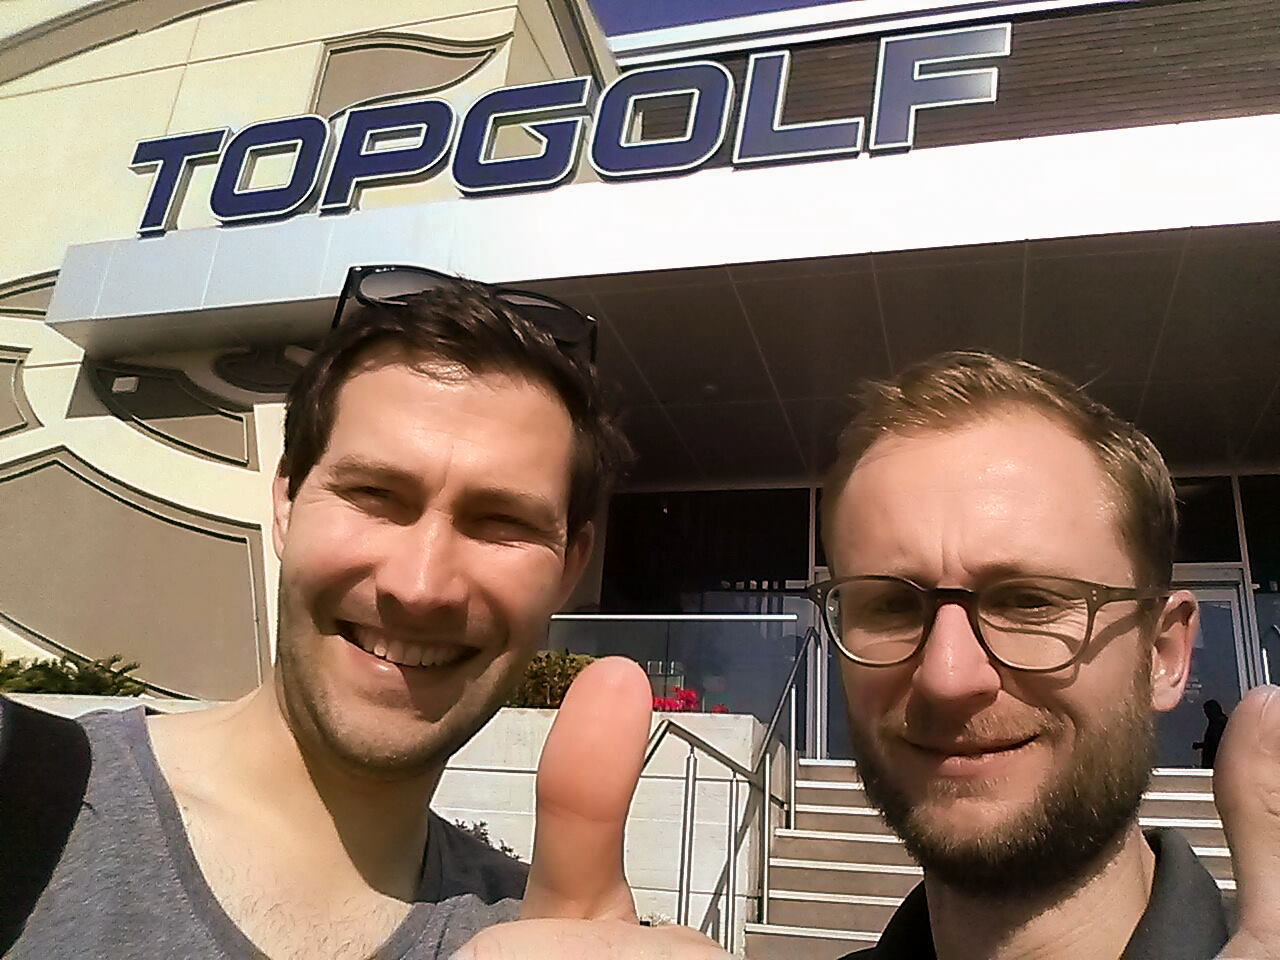 Having fun while being in the United States. A visit at Topgolf is a must! . © puttview.com